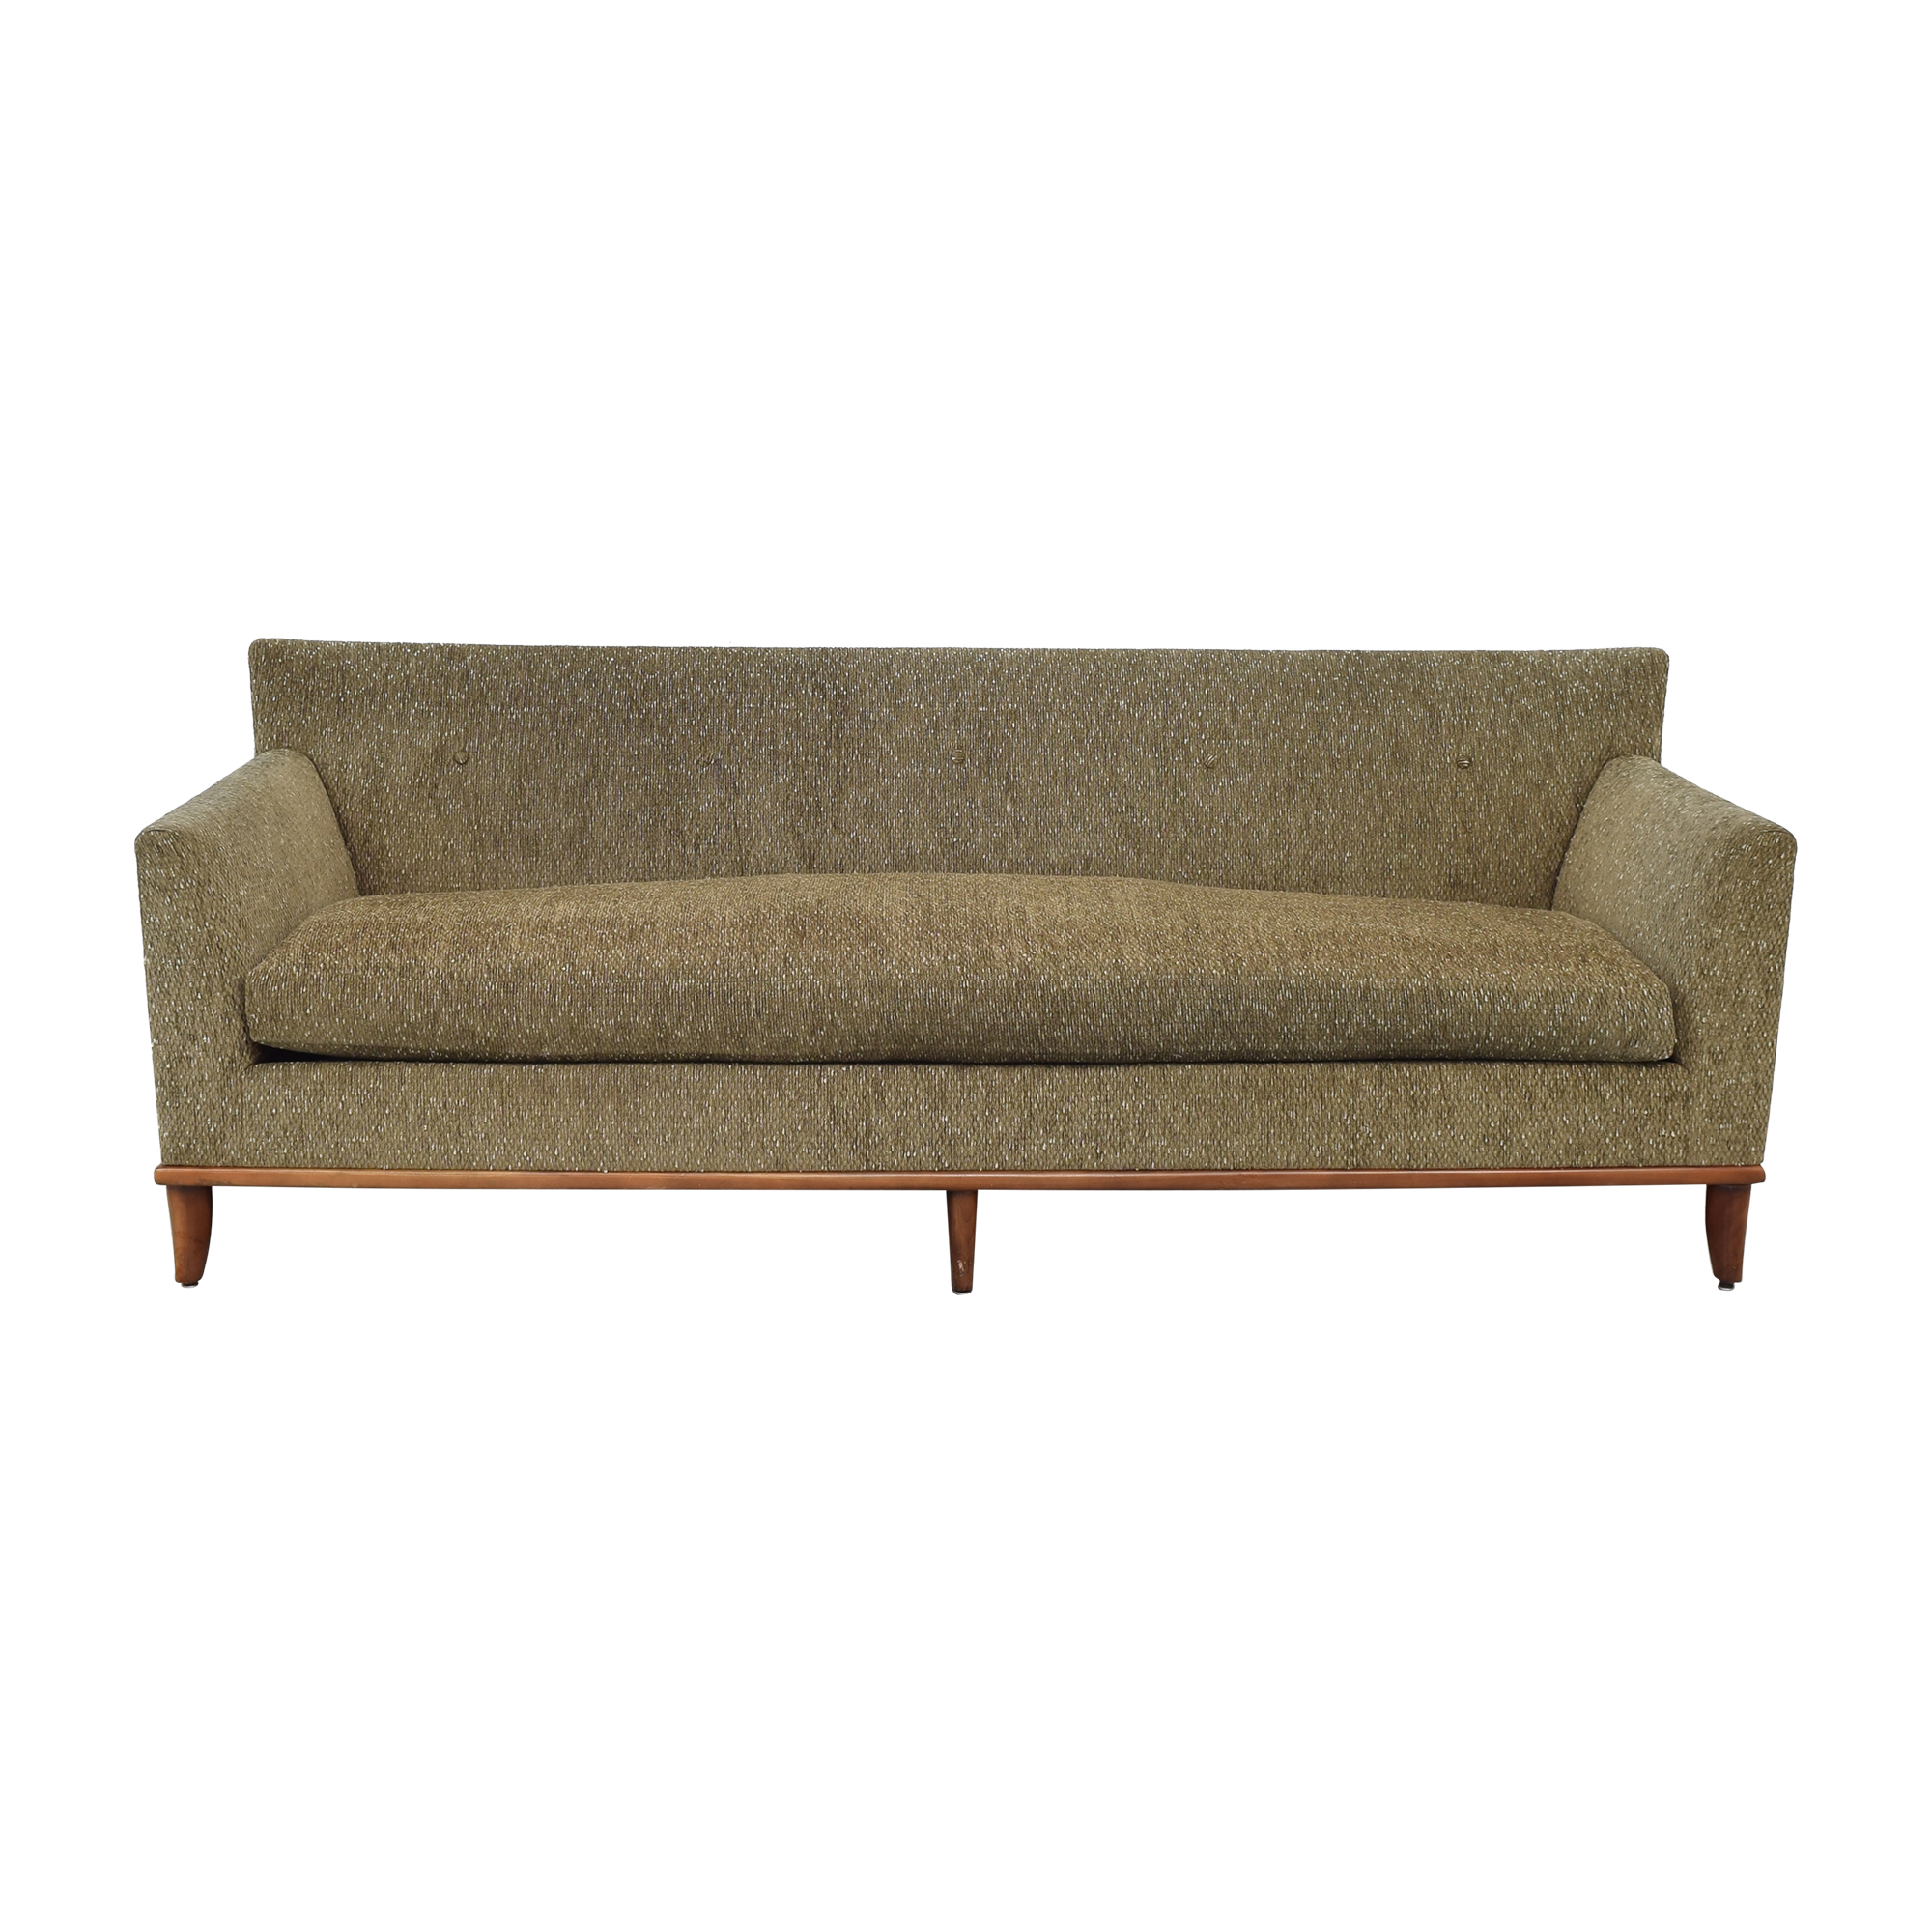 Bright Bright Single Cushion Sofa brown